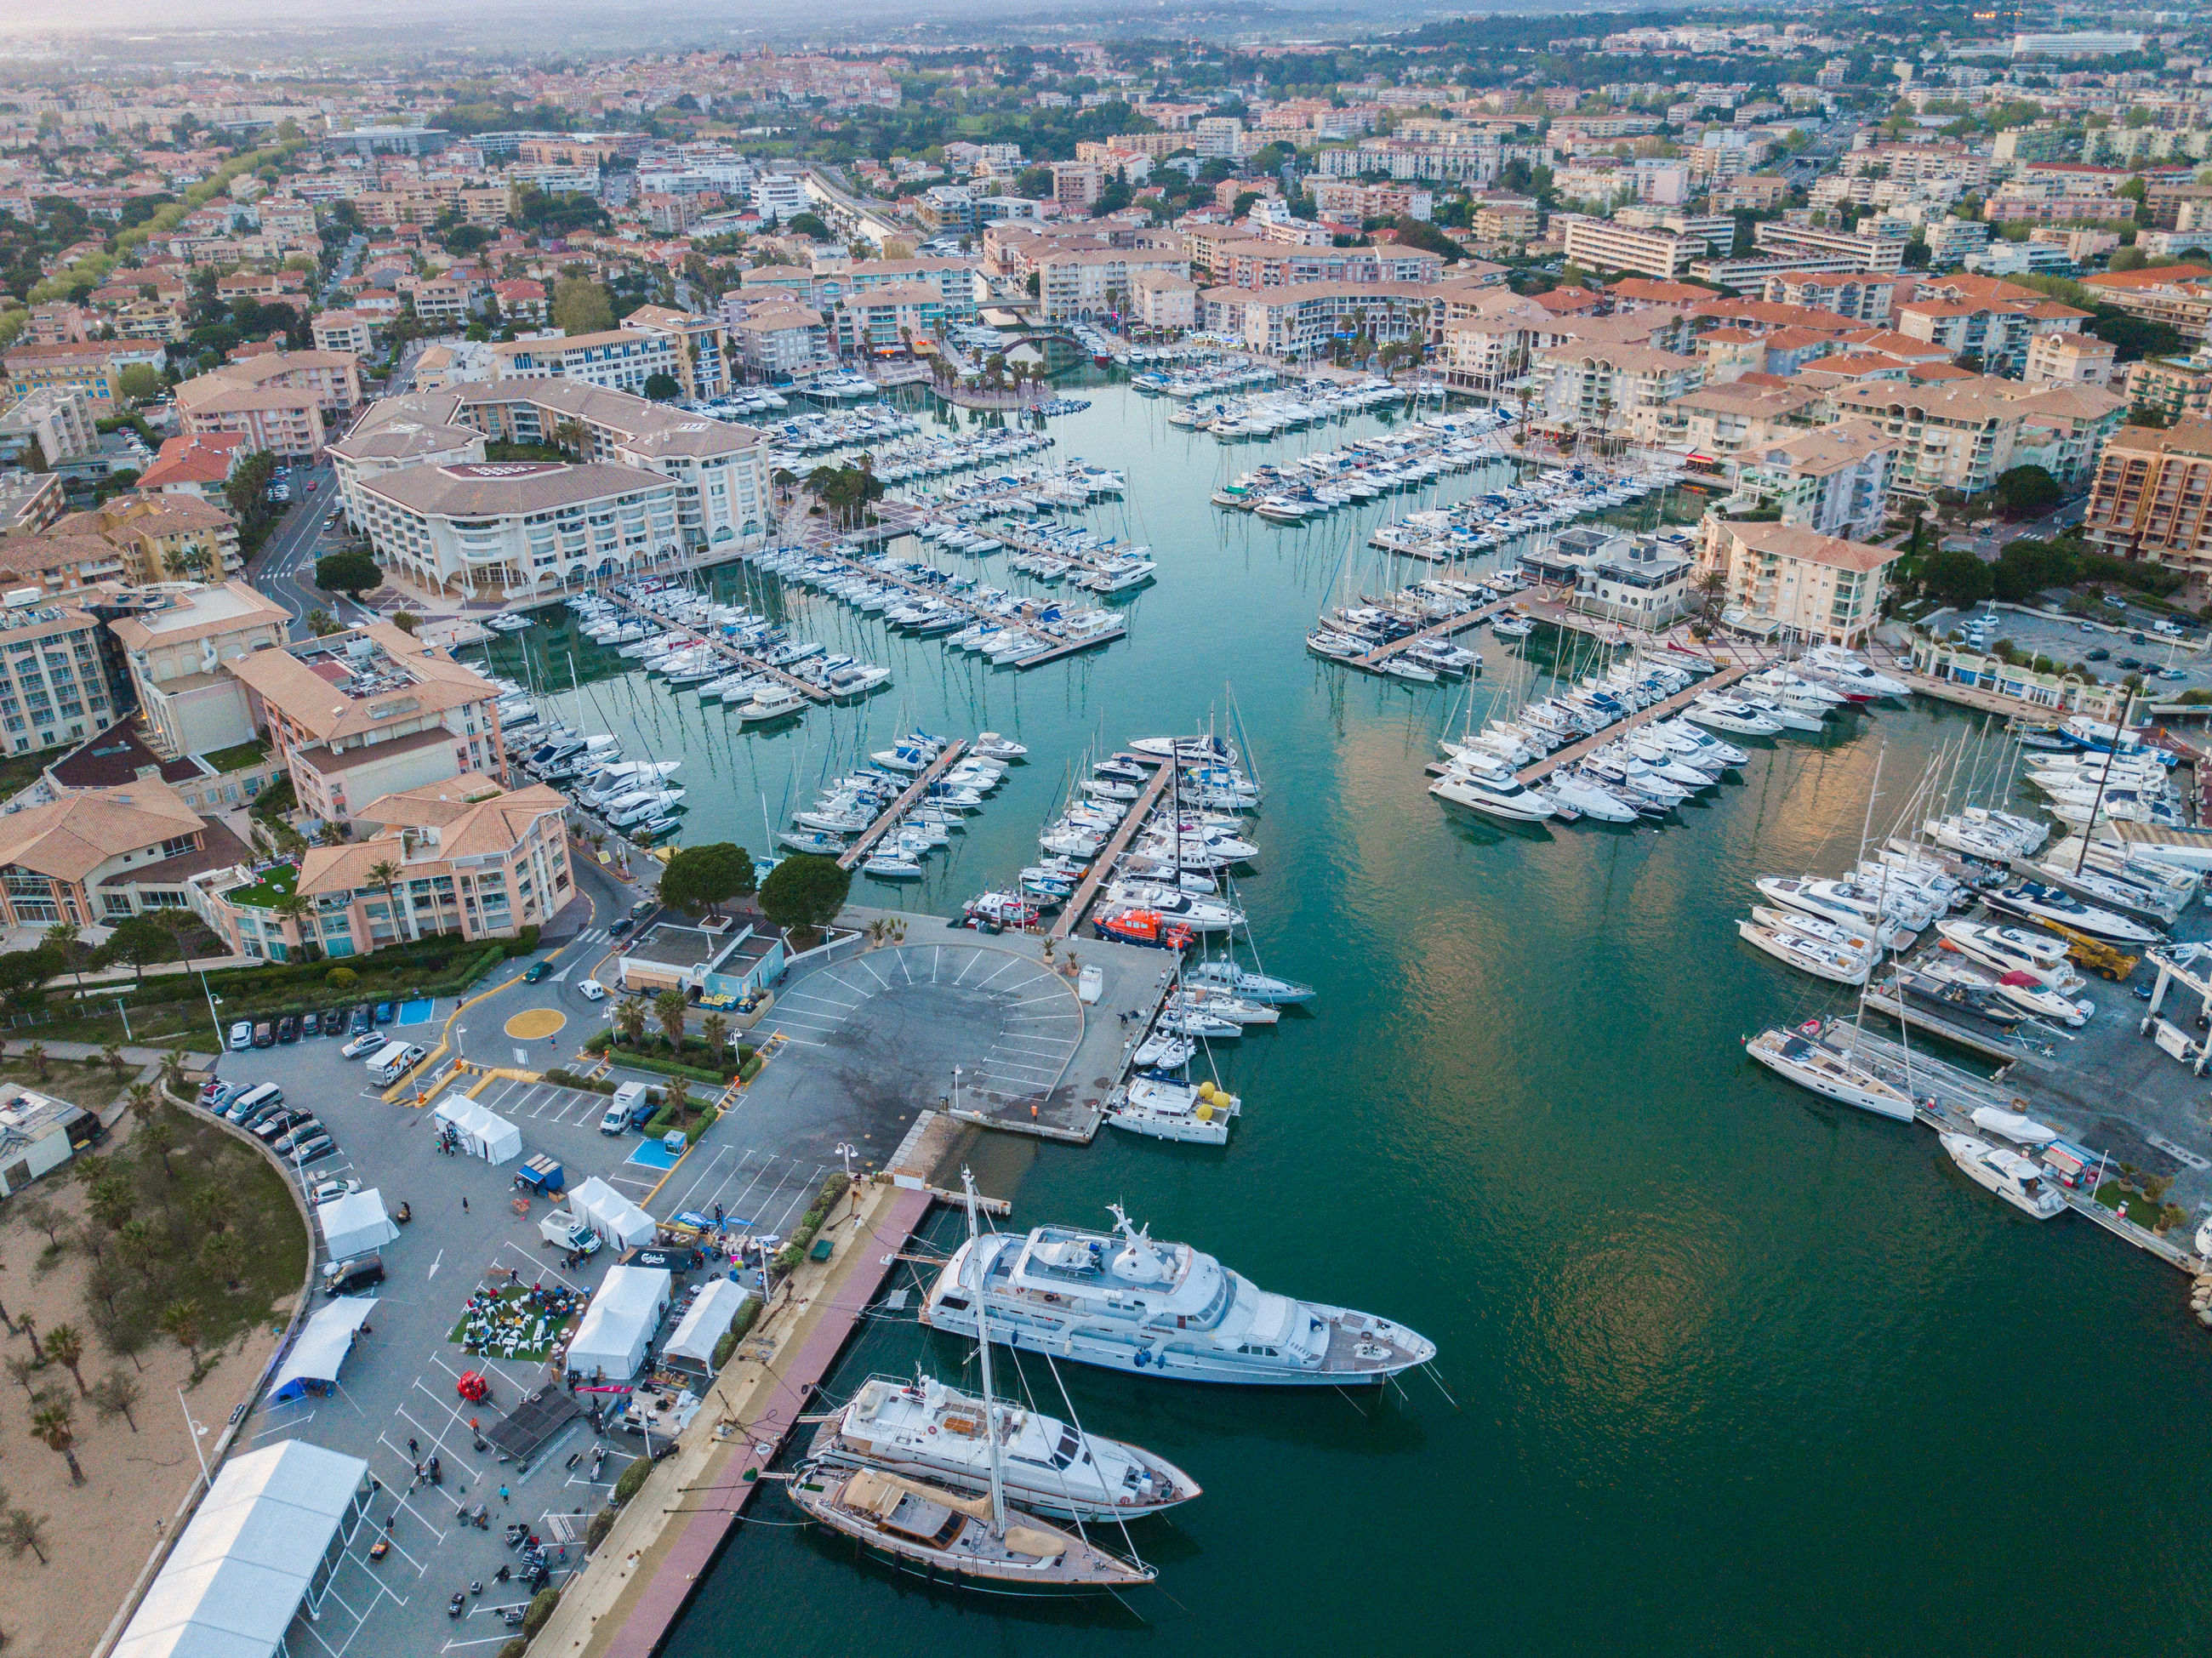 transportation, water, high angle view, nautical vessel, architecture, city, building exterior, aerial view, built structure, mode of transportation, cityscape, harbor, nature, no people, sea, day, travel, travel destinations, ship, outdoors, sailboat